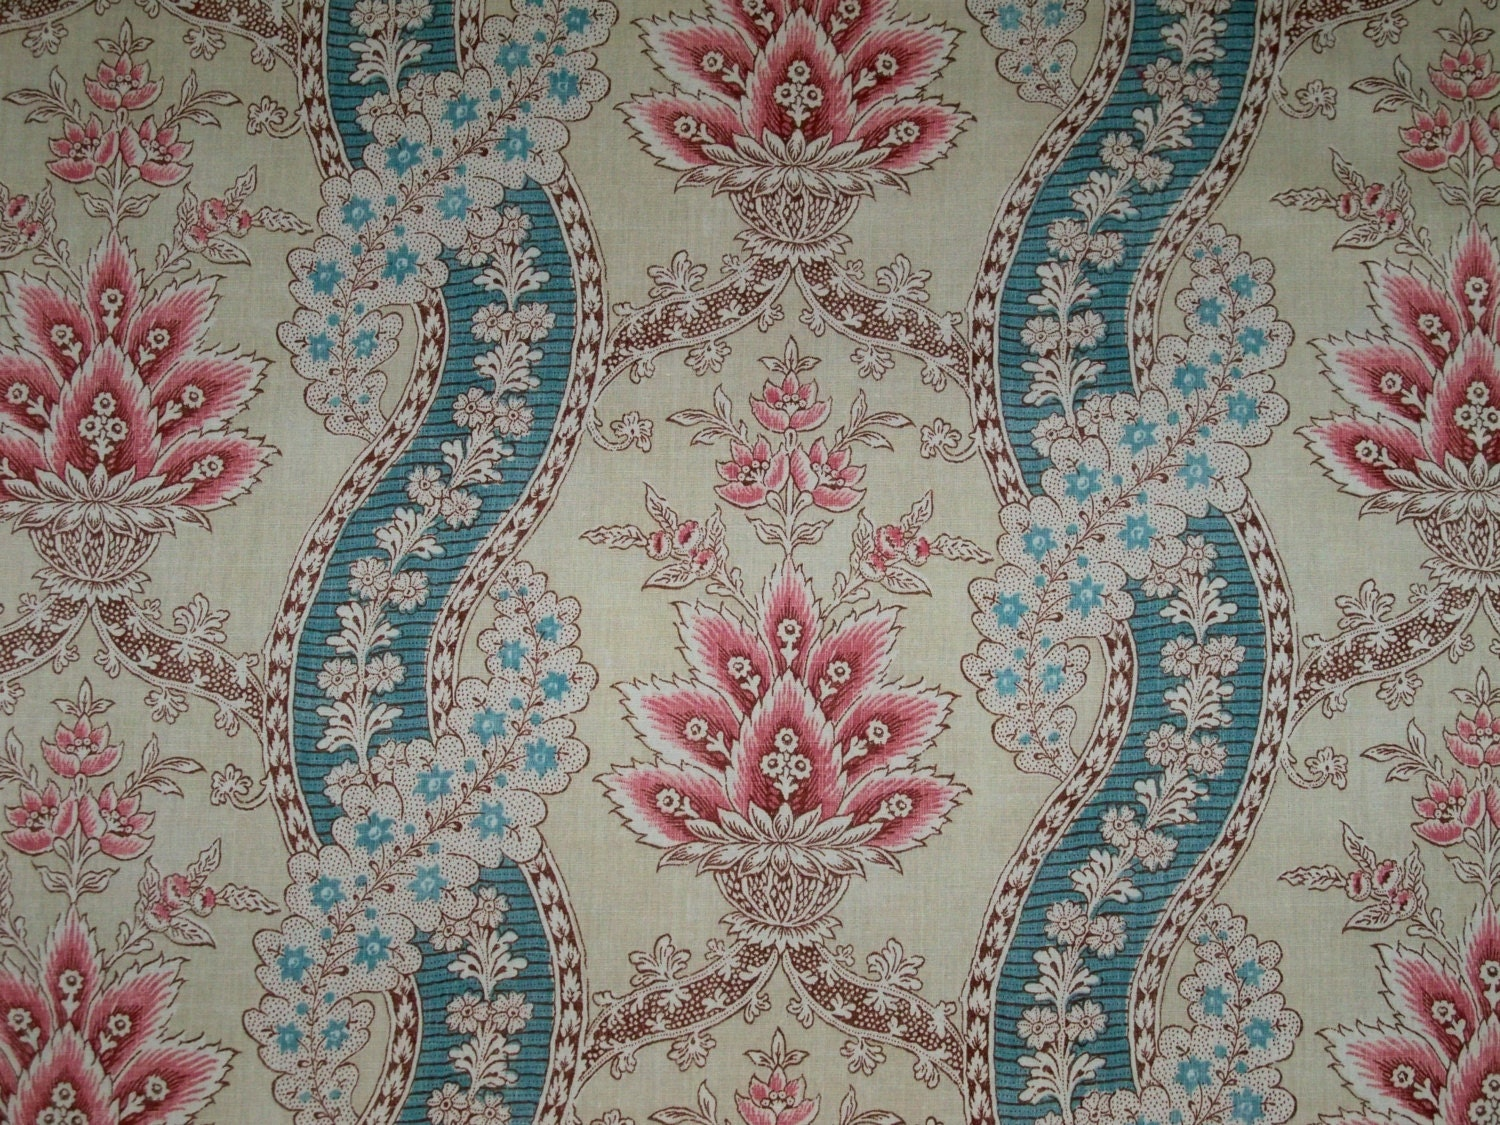 Kravet Laura Ashley French Country Portico Toile Fabric 30